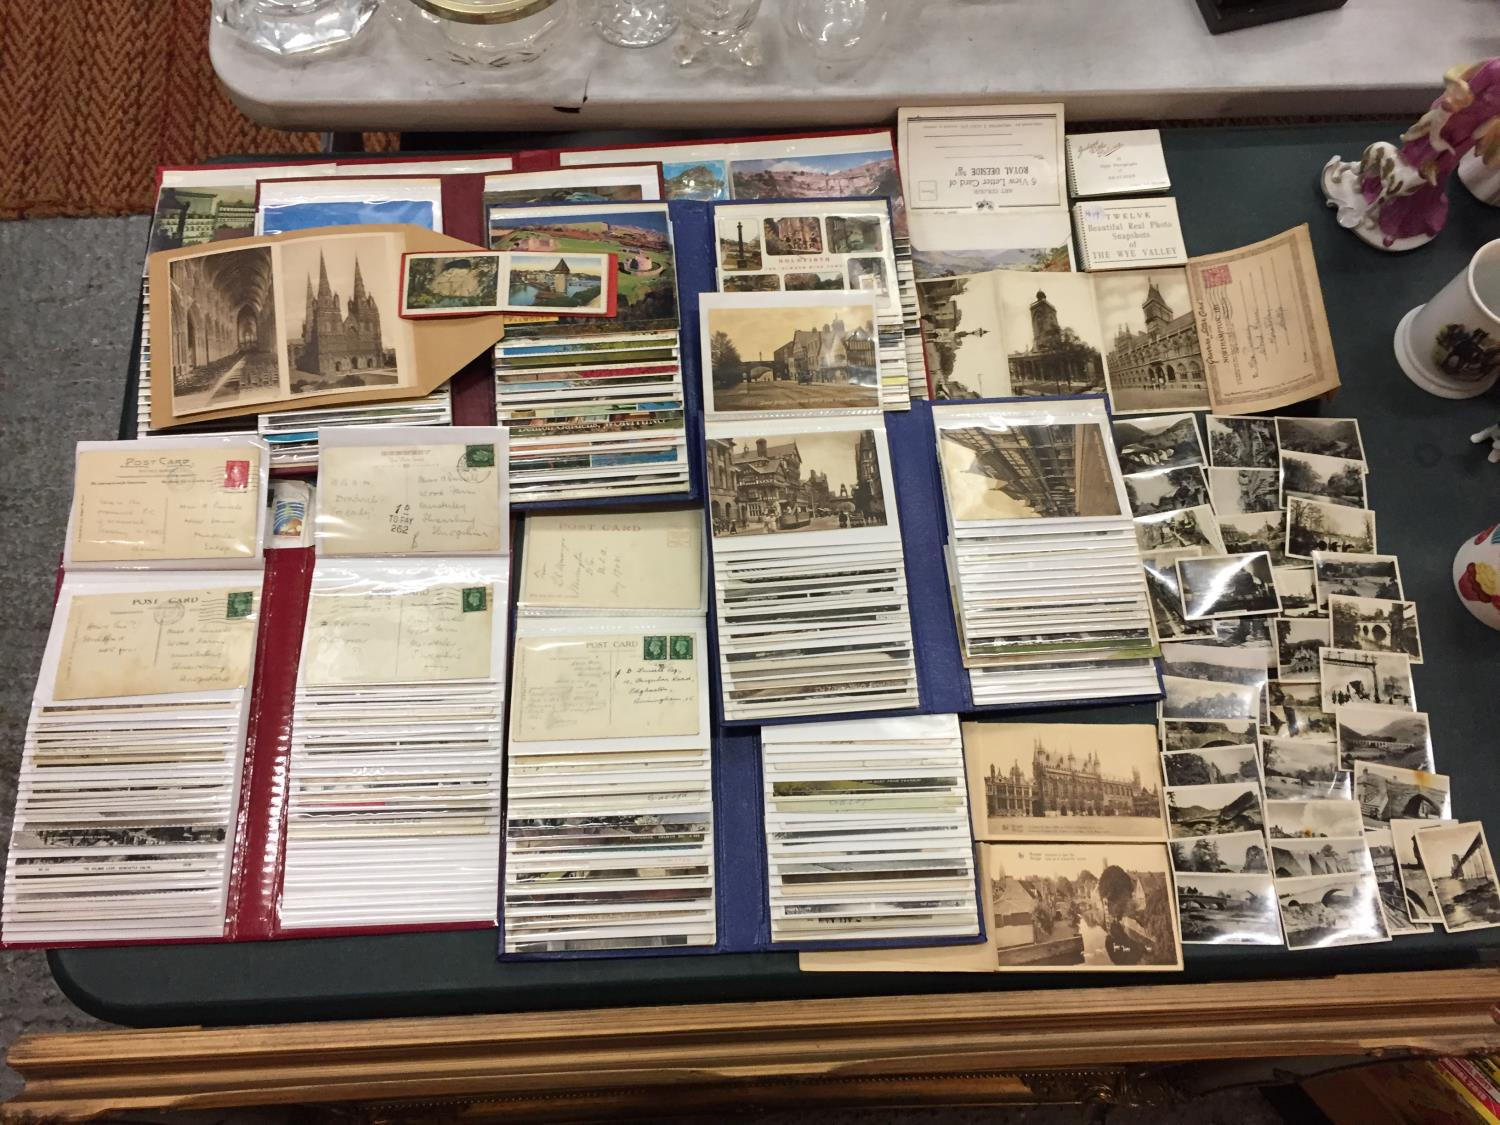 A LARGE COLLECTION OF 550+ ANTIQUE AND VINTAGE POSTCARDS RANGING FROM 1908-1970'S. MAINLEY UK - SOME - Image 2 of 14